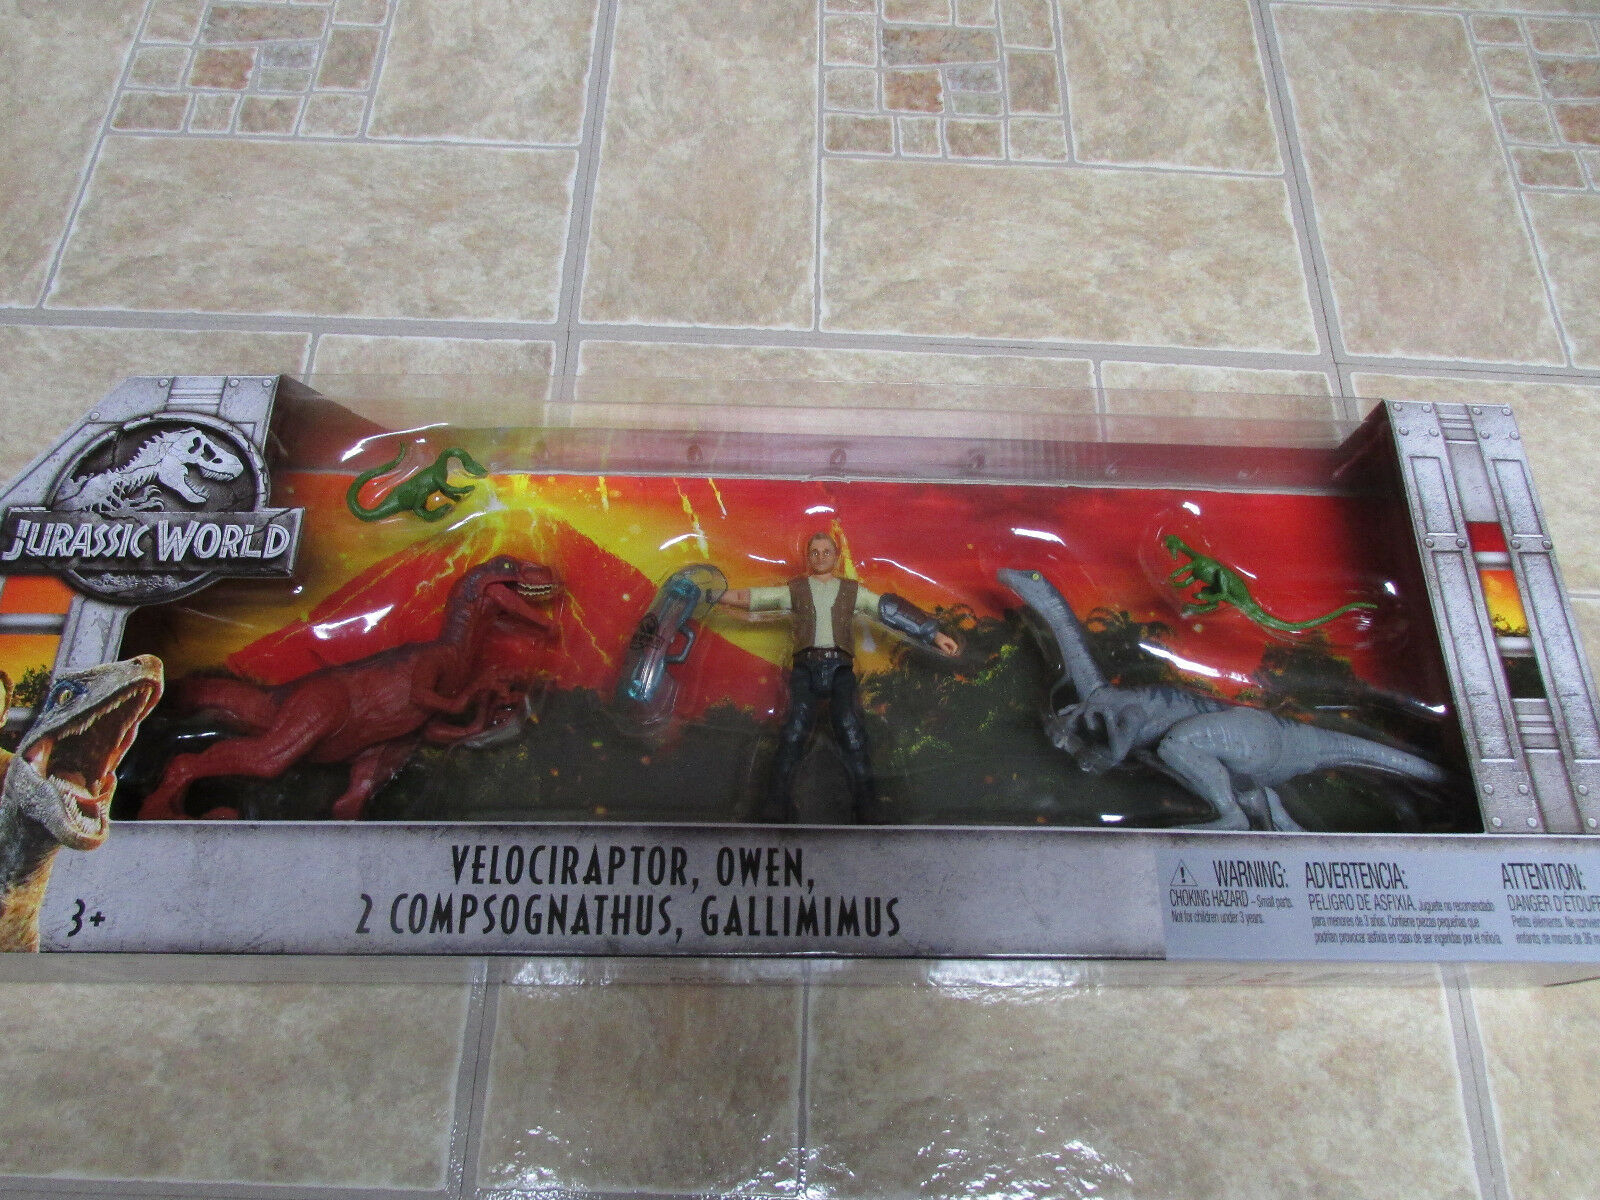 Jurassic World Velociraptor, Gallimimus that Rex eats Jurassic Park